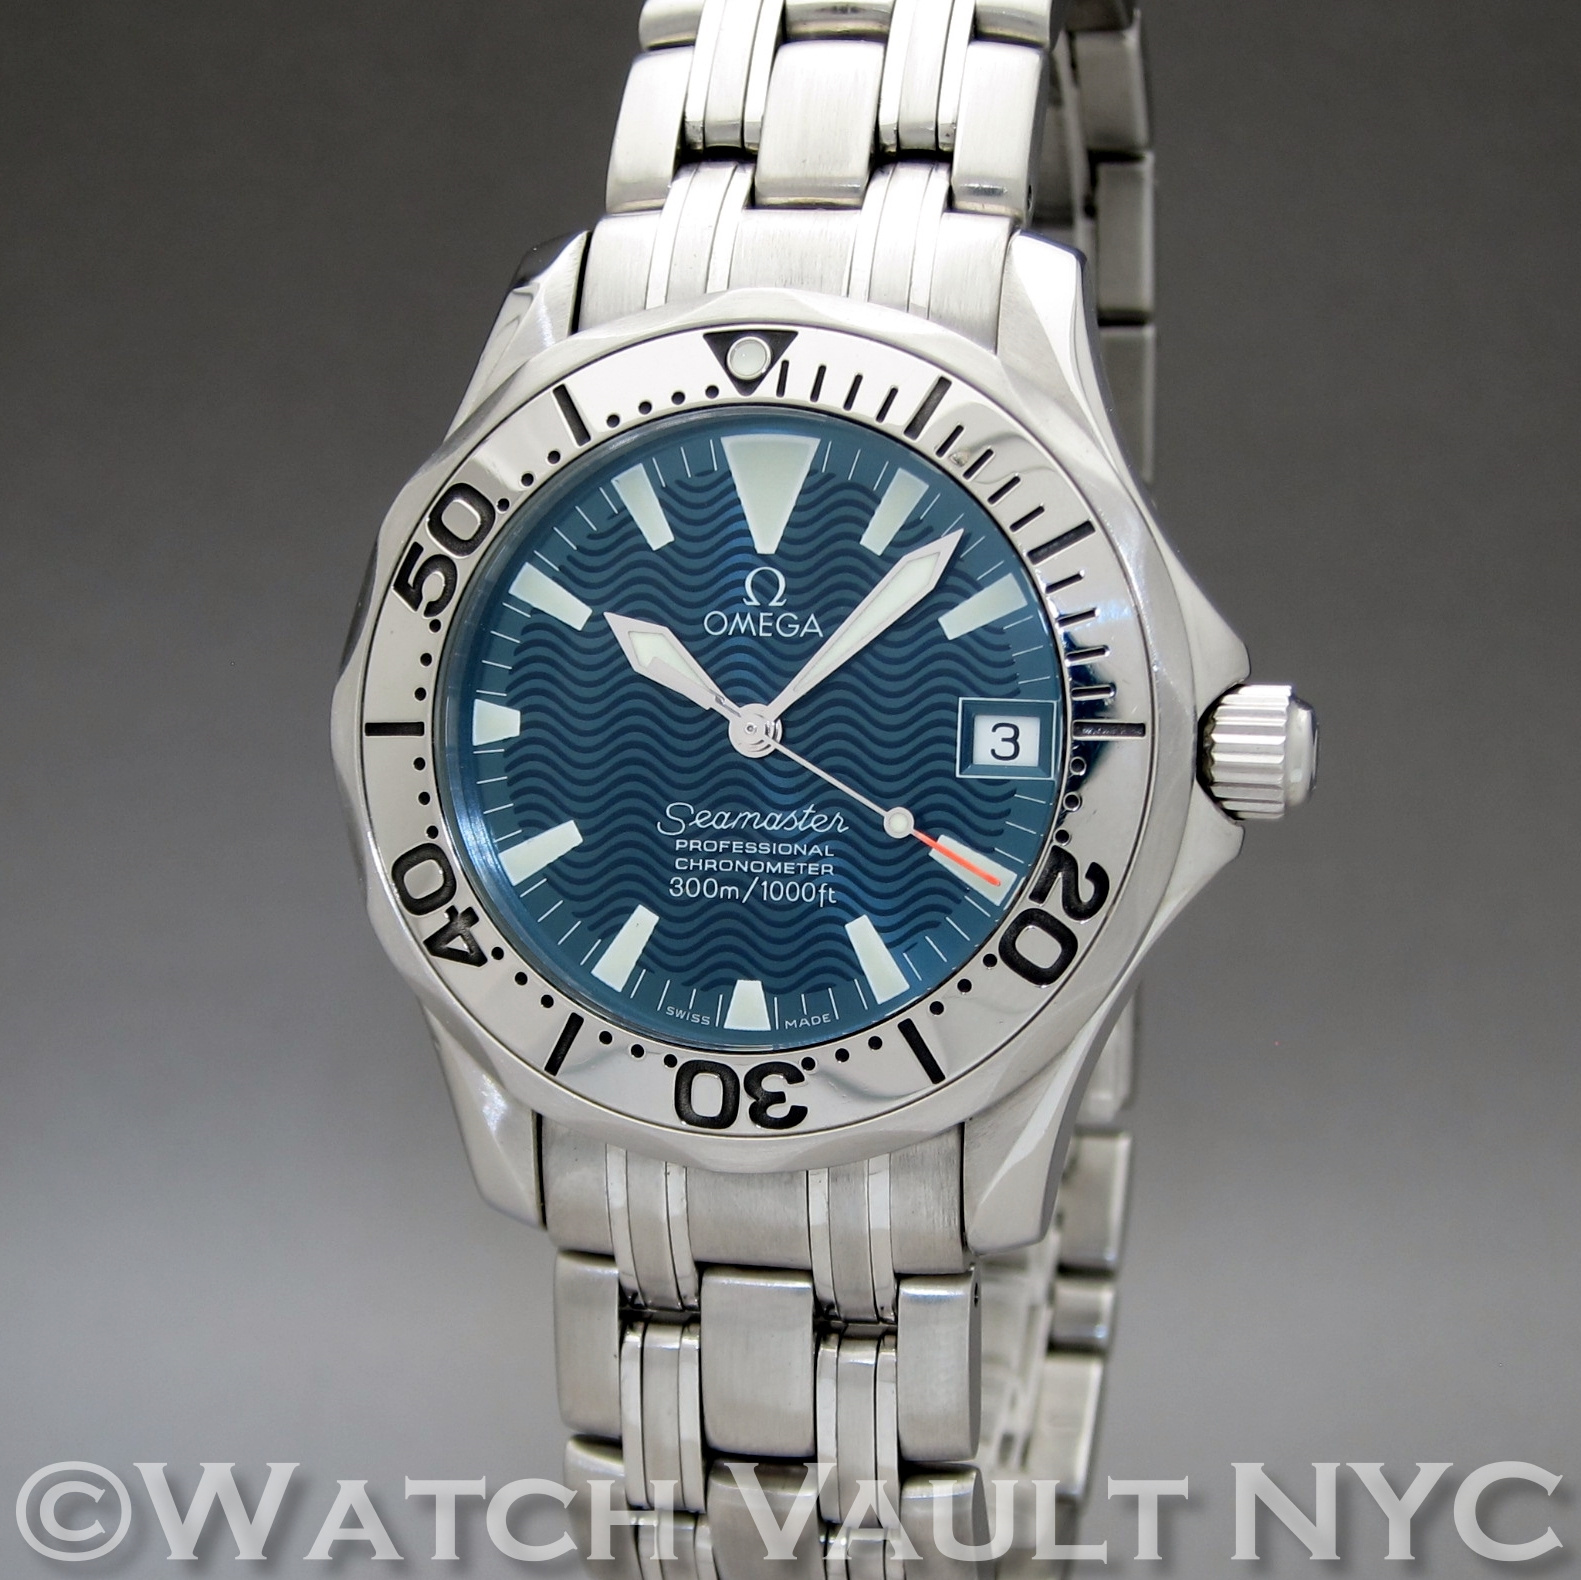 Omega seamaster professional electric blue 300m jacques mayol limited numbered edition for Omega seamaster professional